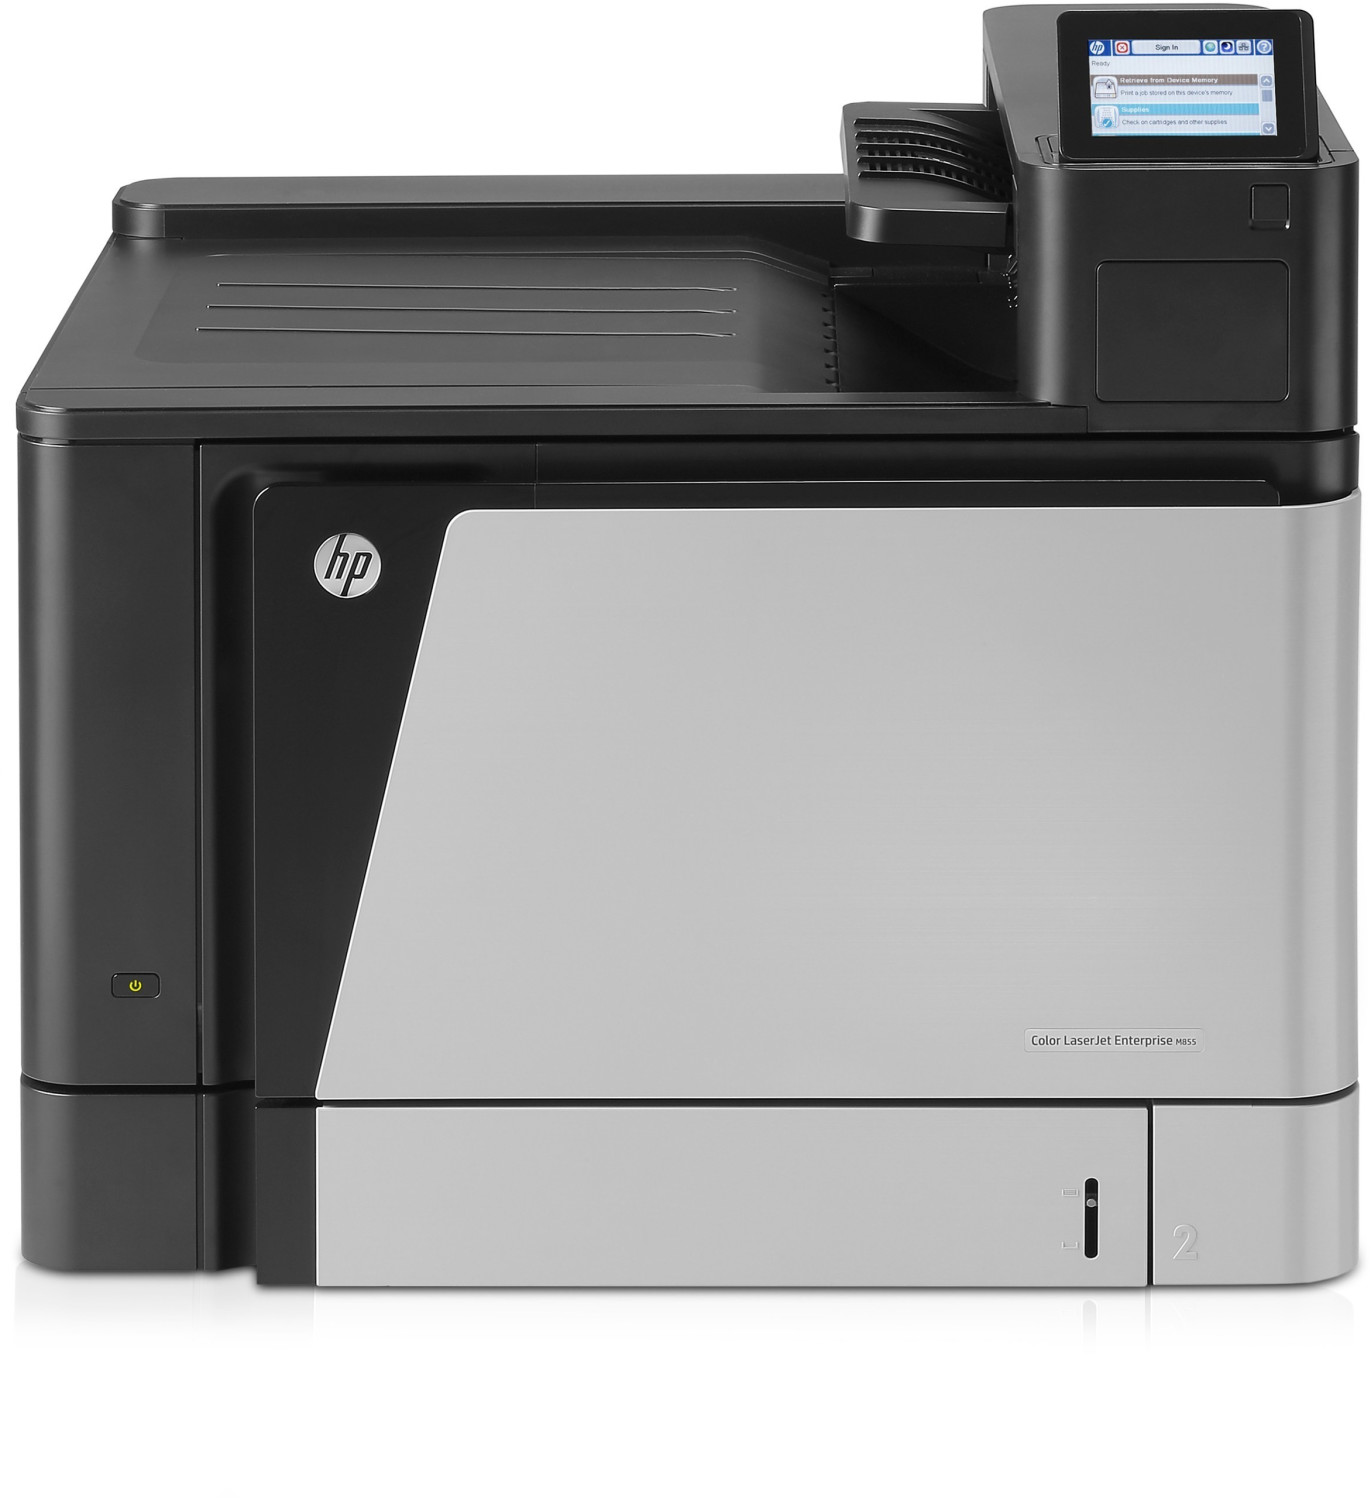 Hewlett-Packard HP Color LaserJet Enterprise M855dn (A2W77A)